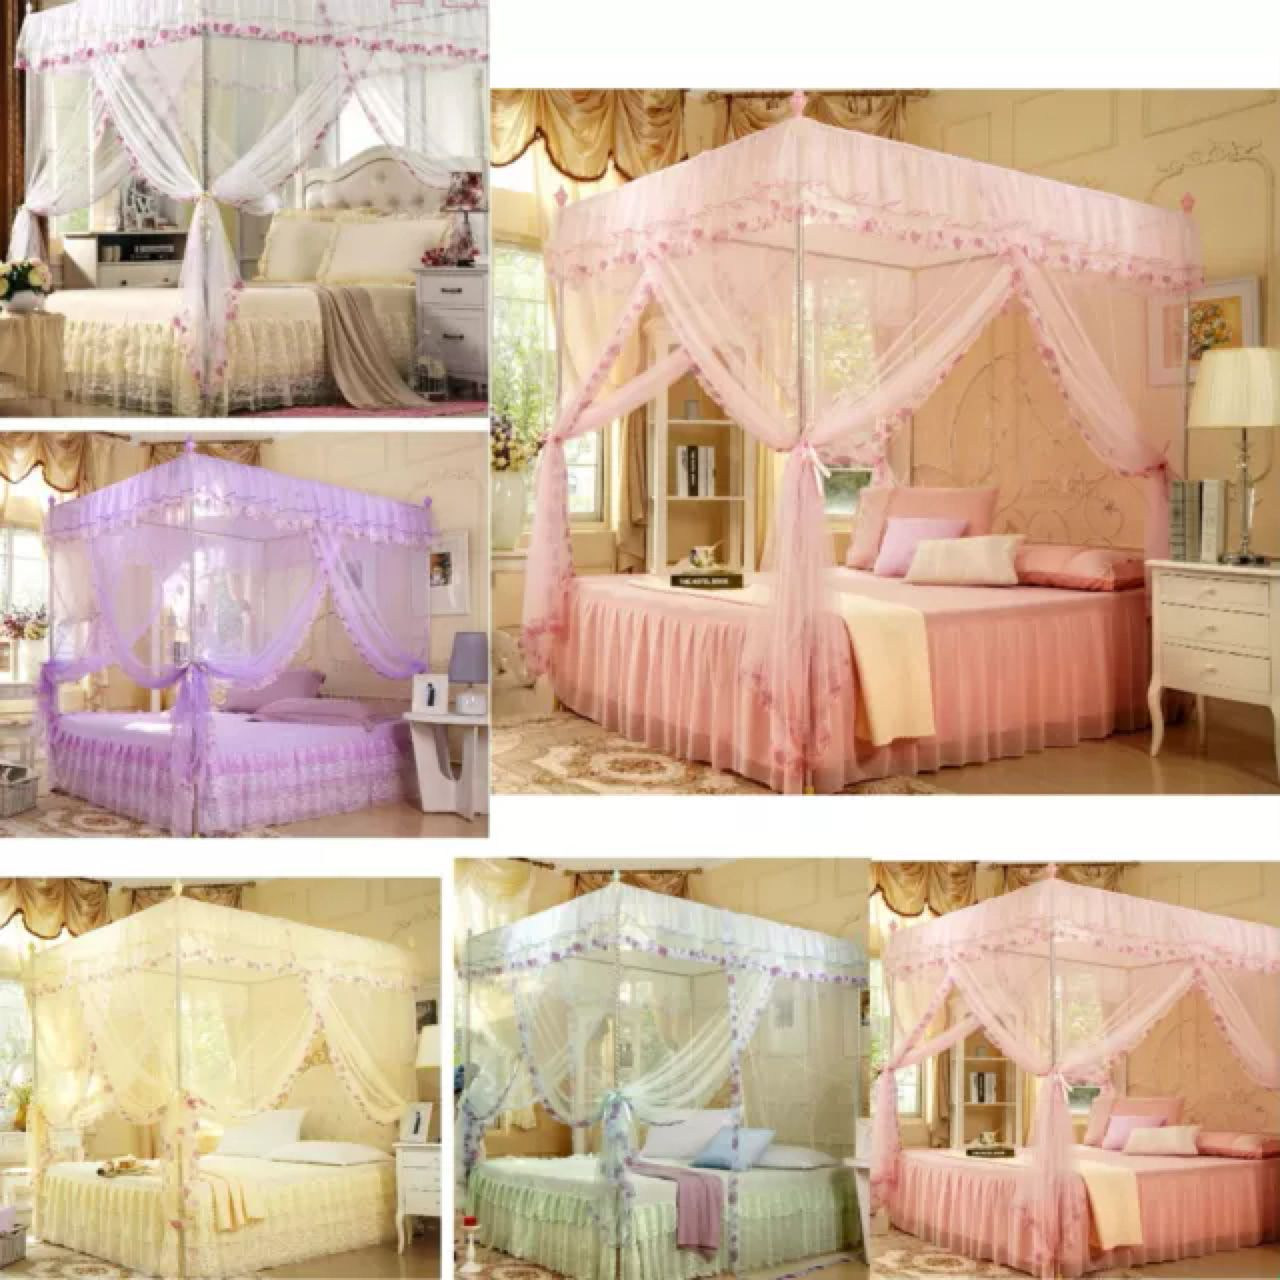 Pin by Rebecca Reinstein on Rubys Room Princess canopy